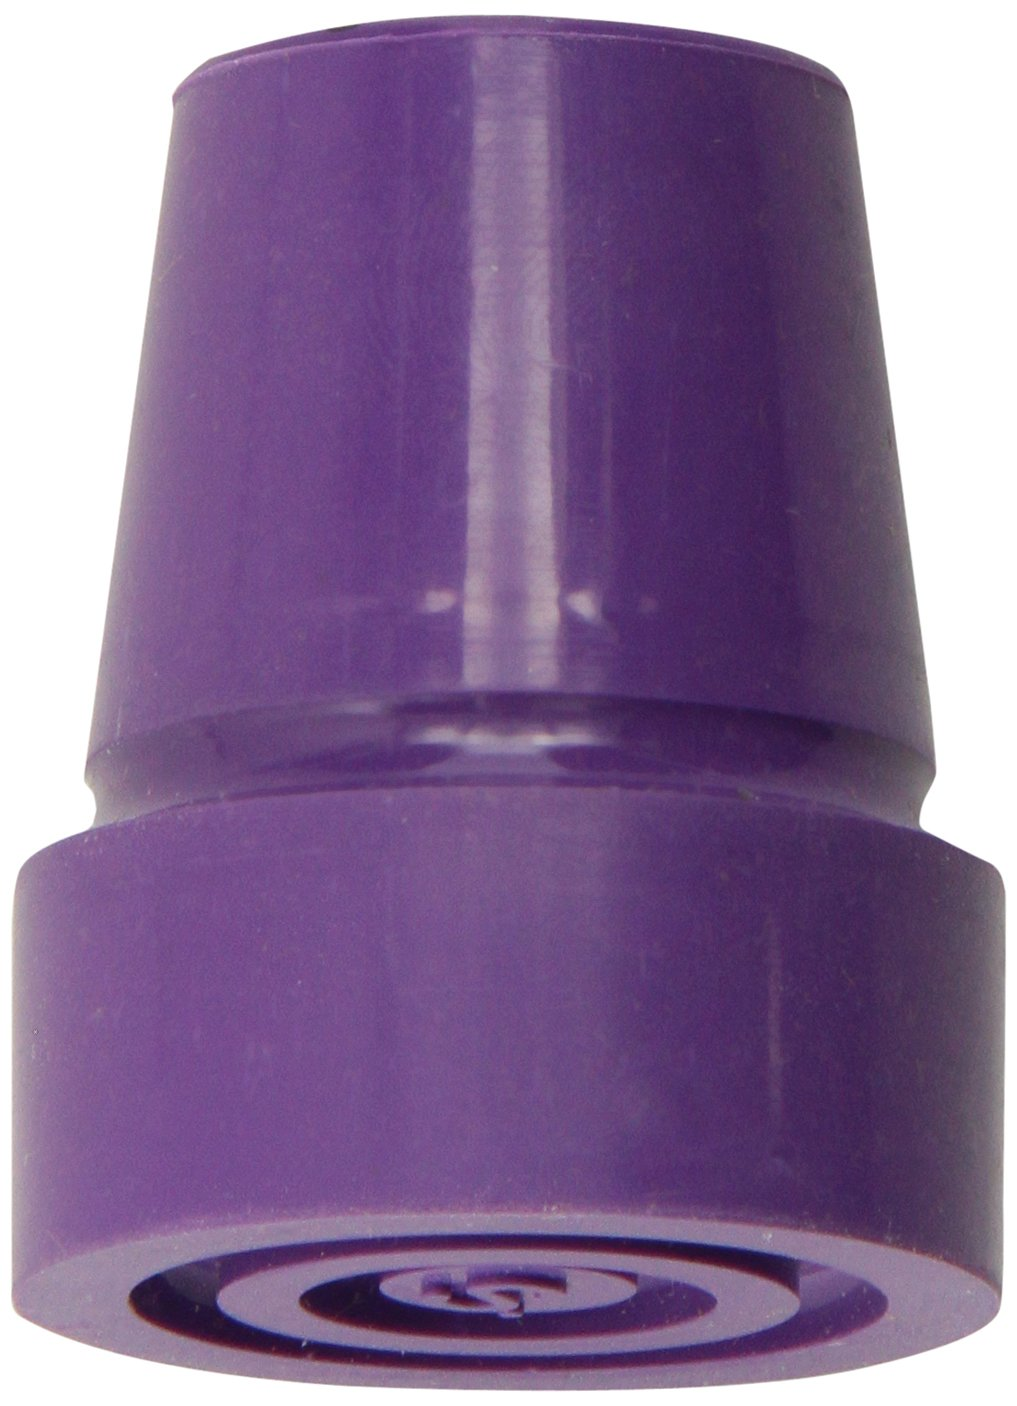 switch sticks Replacement Walking Stick Ferrule Cane Tip, Violet Purple